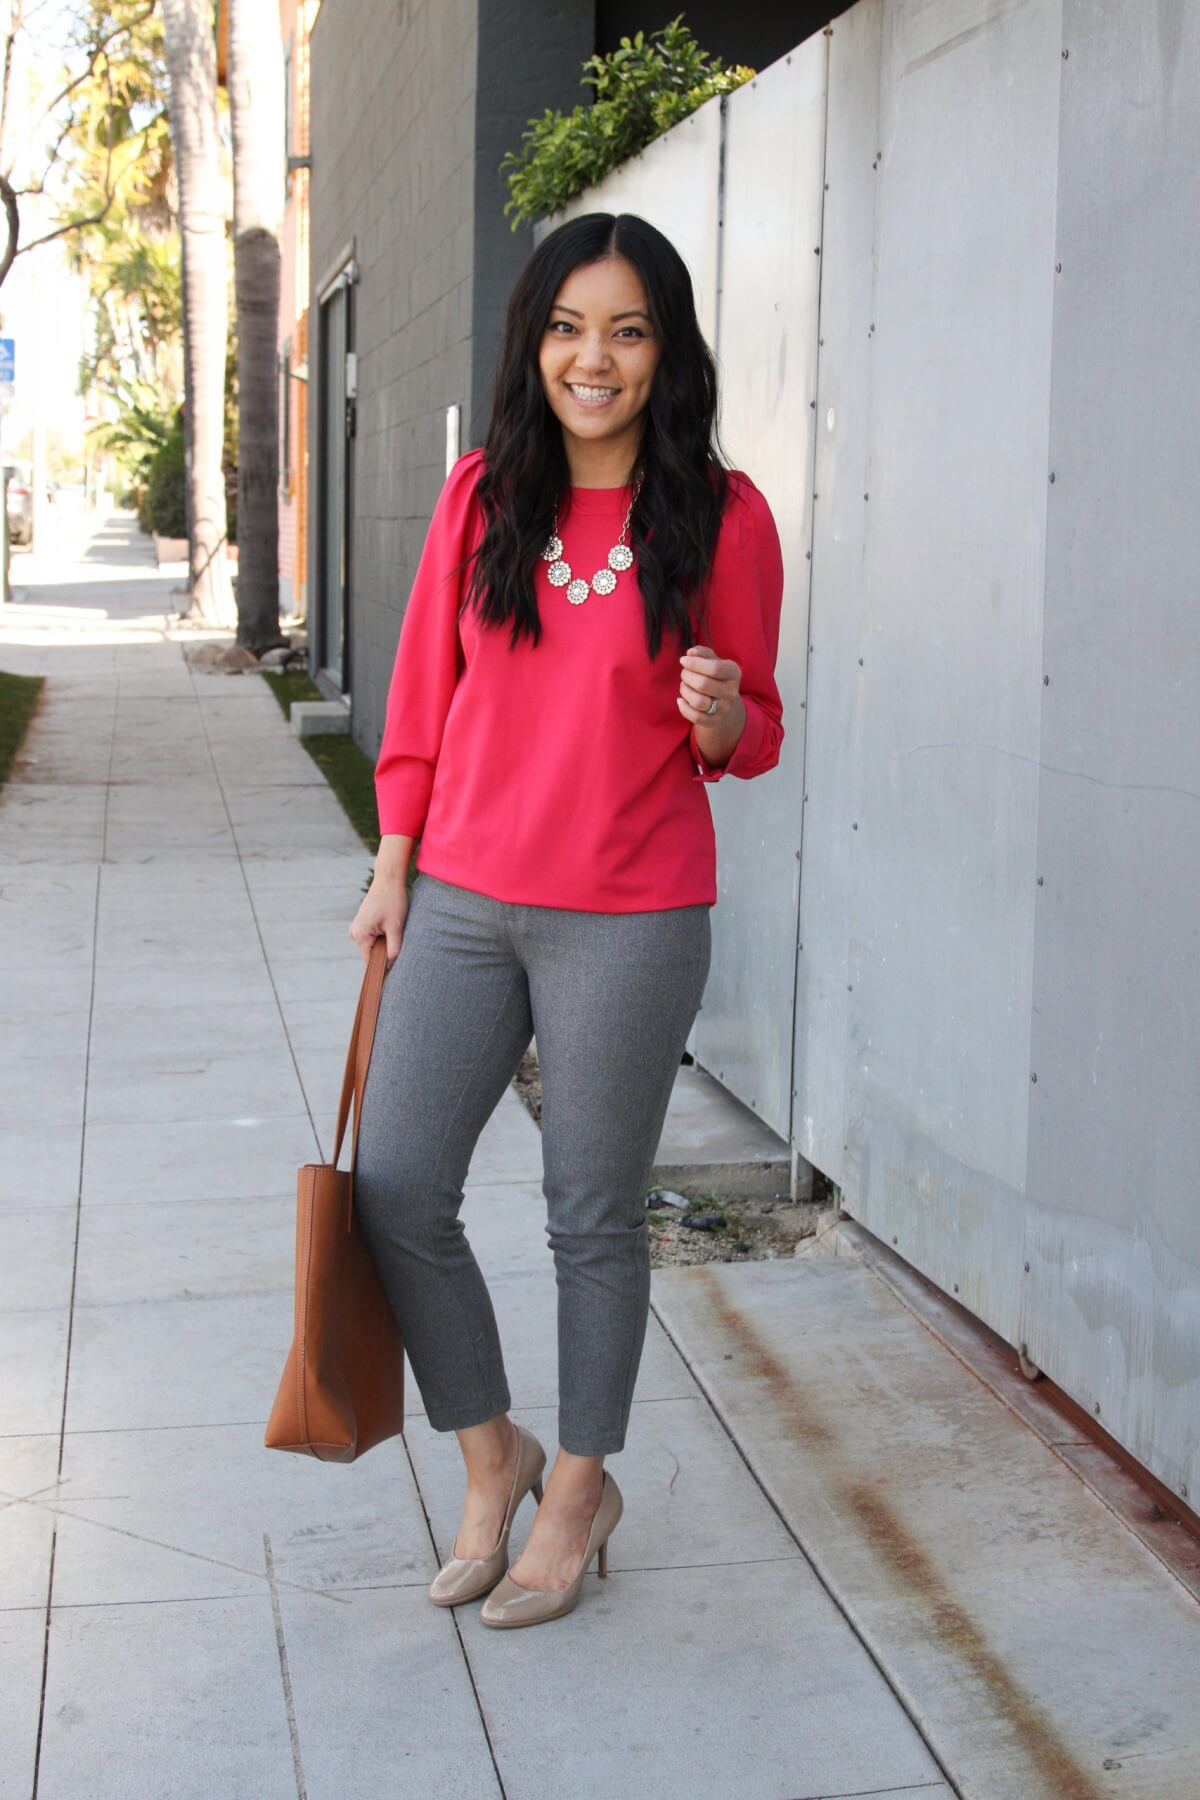 spring business casual outfit: colorful top + neutral pants + statement necklace + nude pumps + brown tote